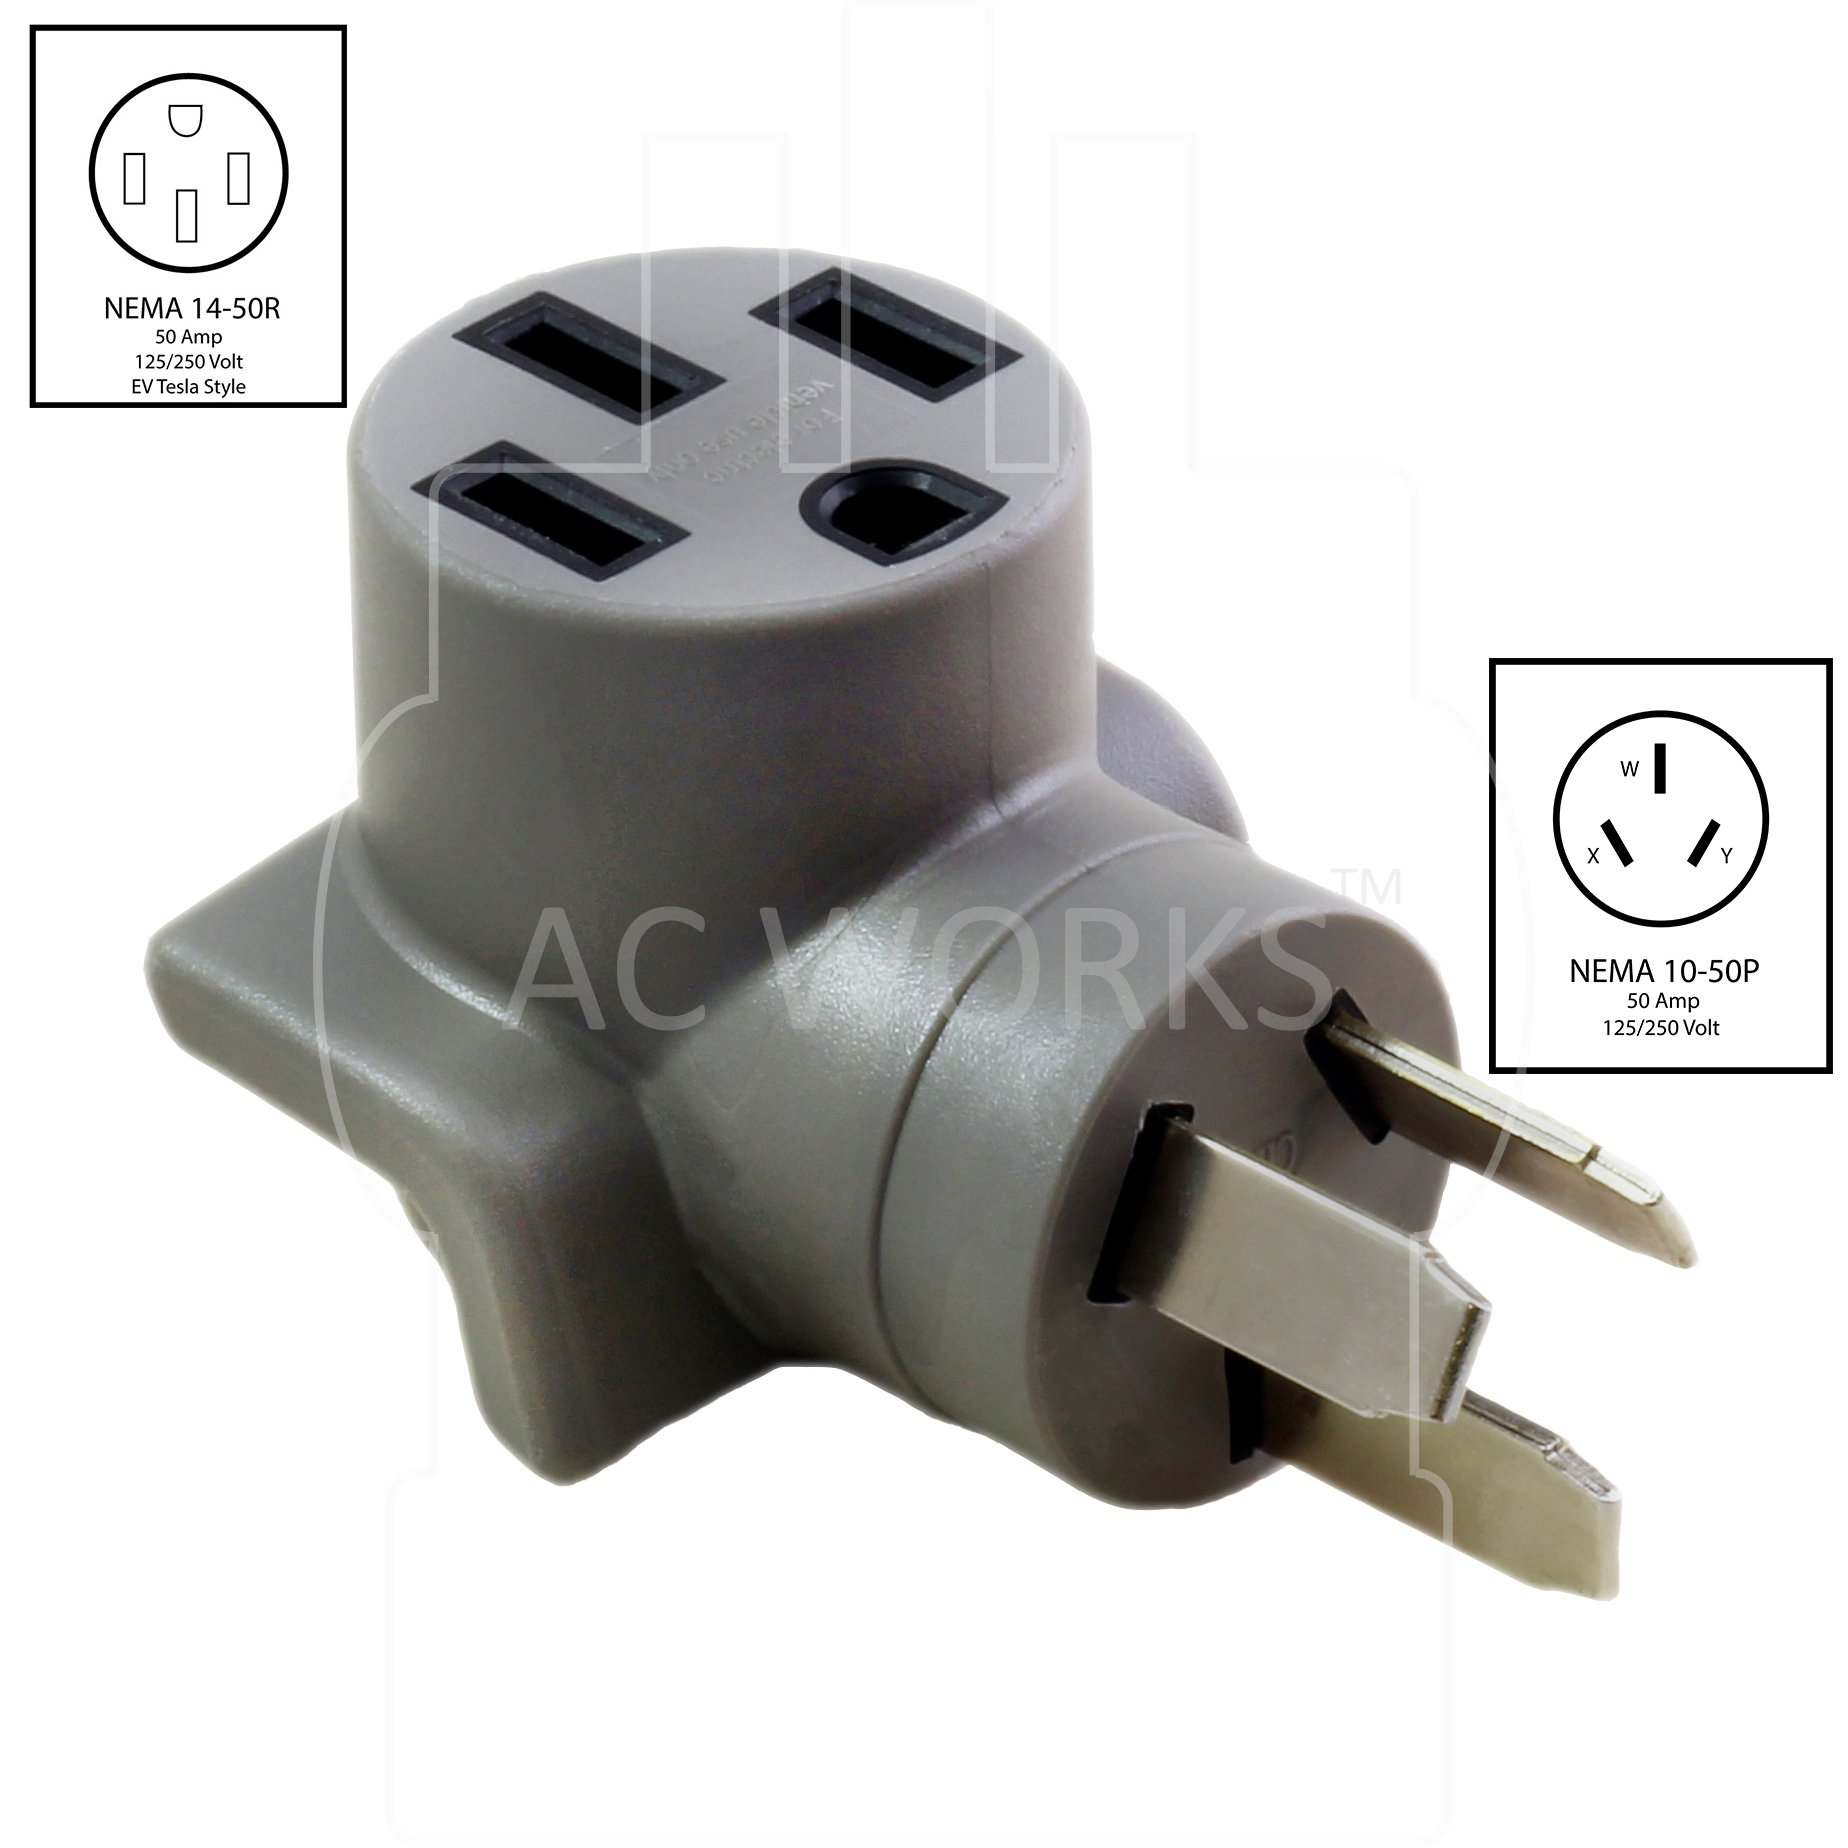 AC WORKS EV Charging Adapter for Tesla Use (10-50 50A 3-Prong Straight Blade to Tesla) by AC WORKS (Image #2)